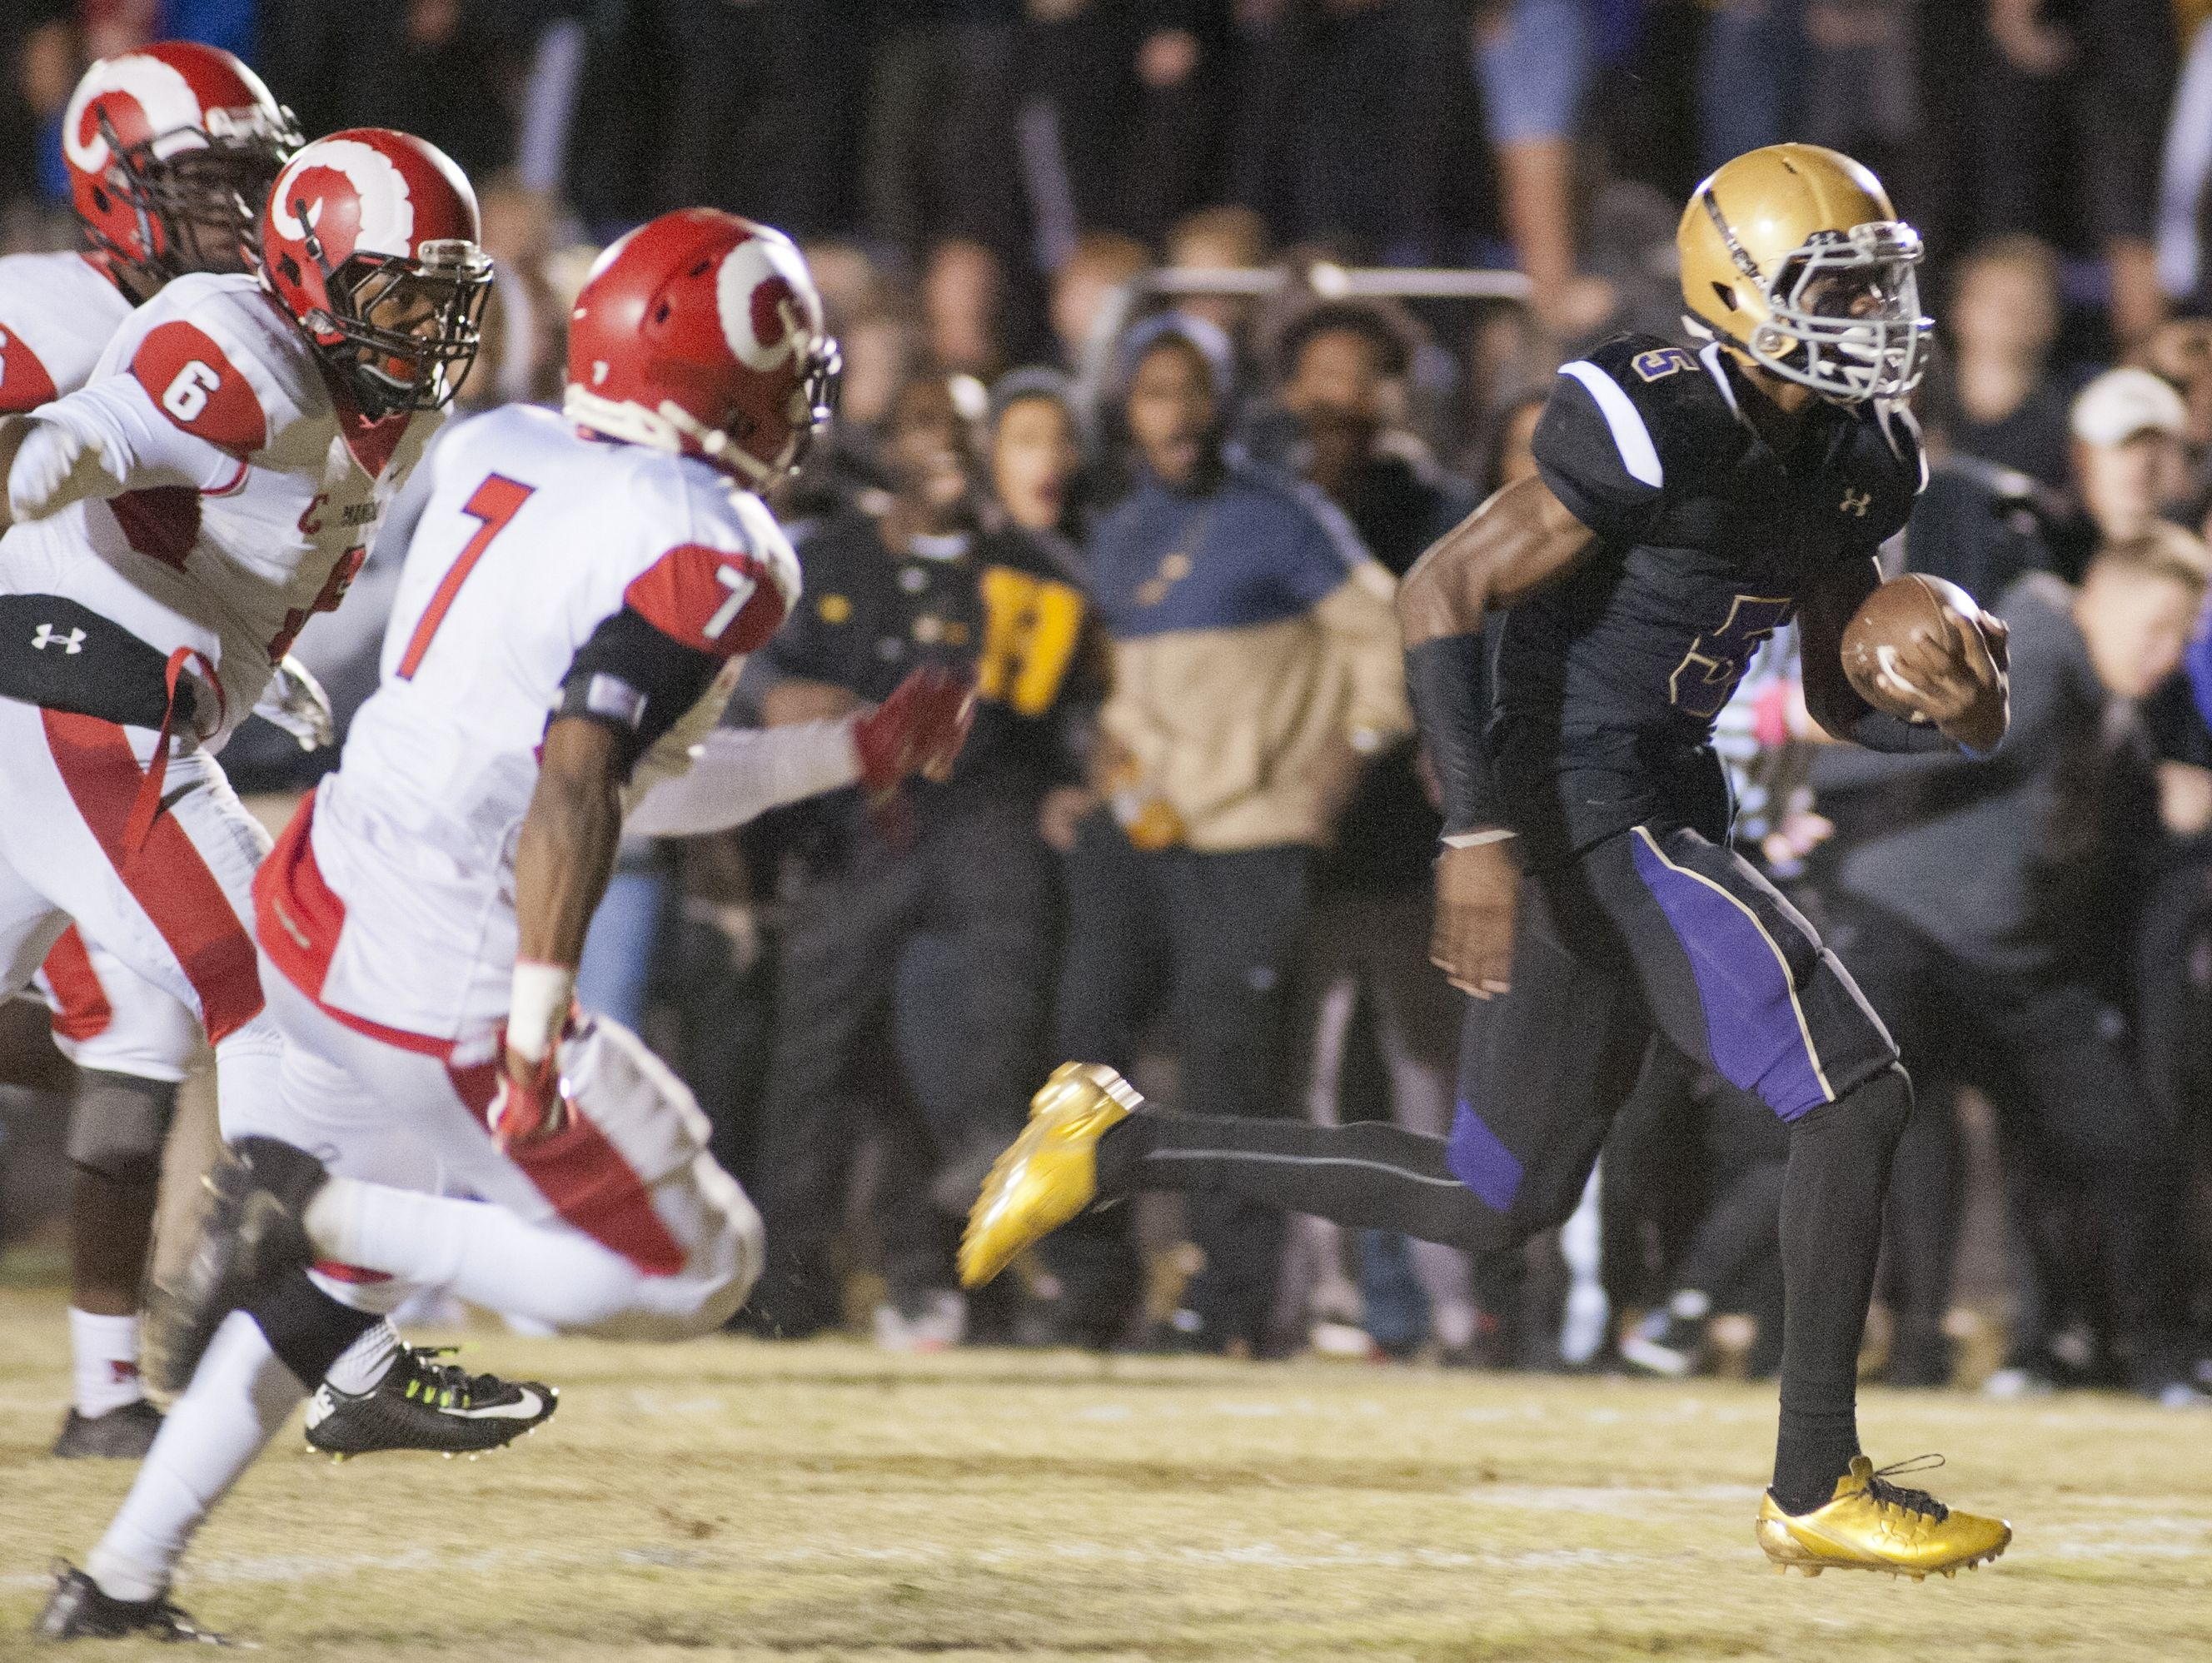 L-R: Manual defensive back Keon Farris, Manual outside linebacker Andre Teague, Jr. and Manual defensive back Bryce Cosby can't catch Male wide receiver Nathan Hobbs who scores the only touchdown of the 1st half with just 23.4 seconds to play. 21 October 2016